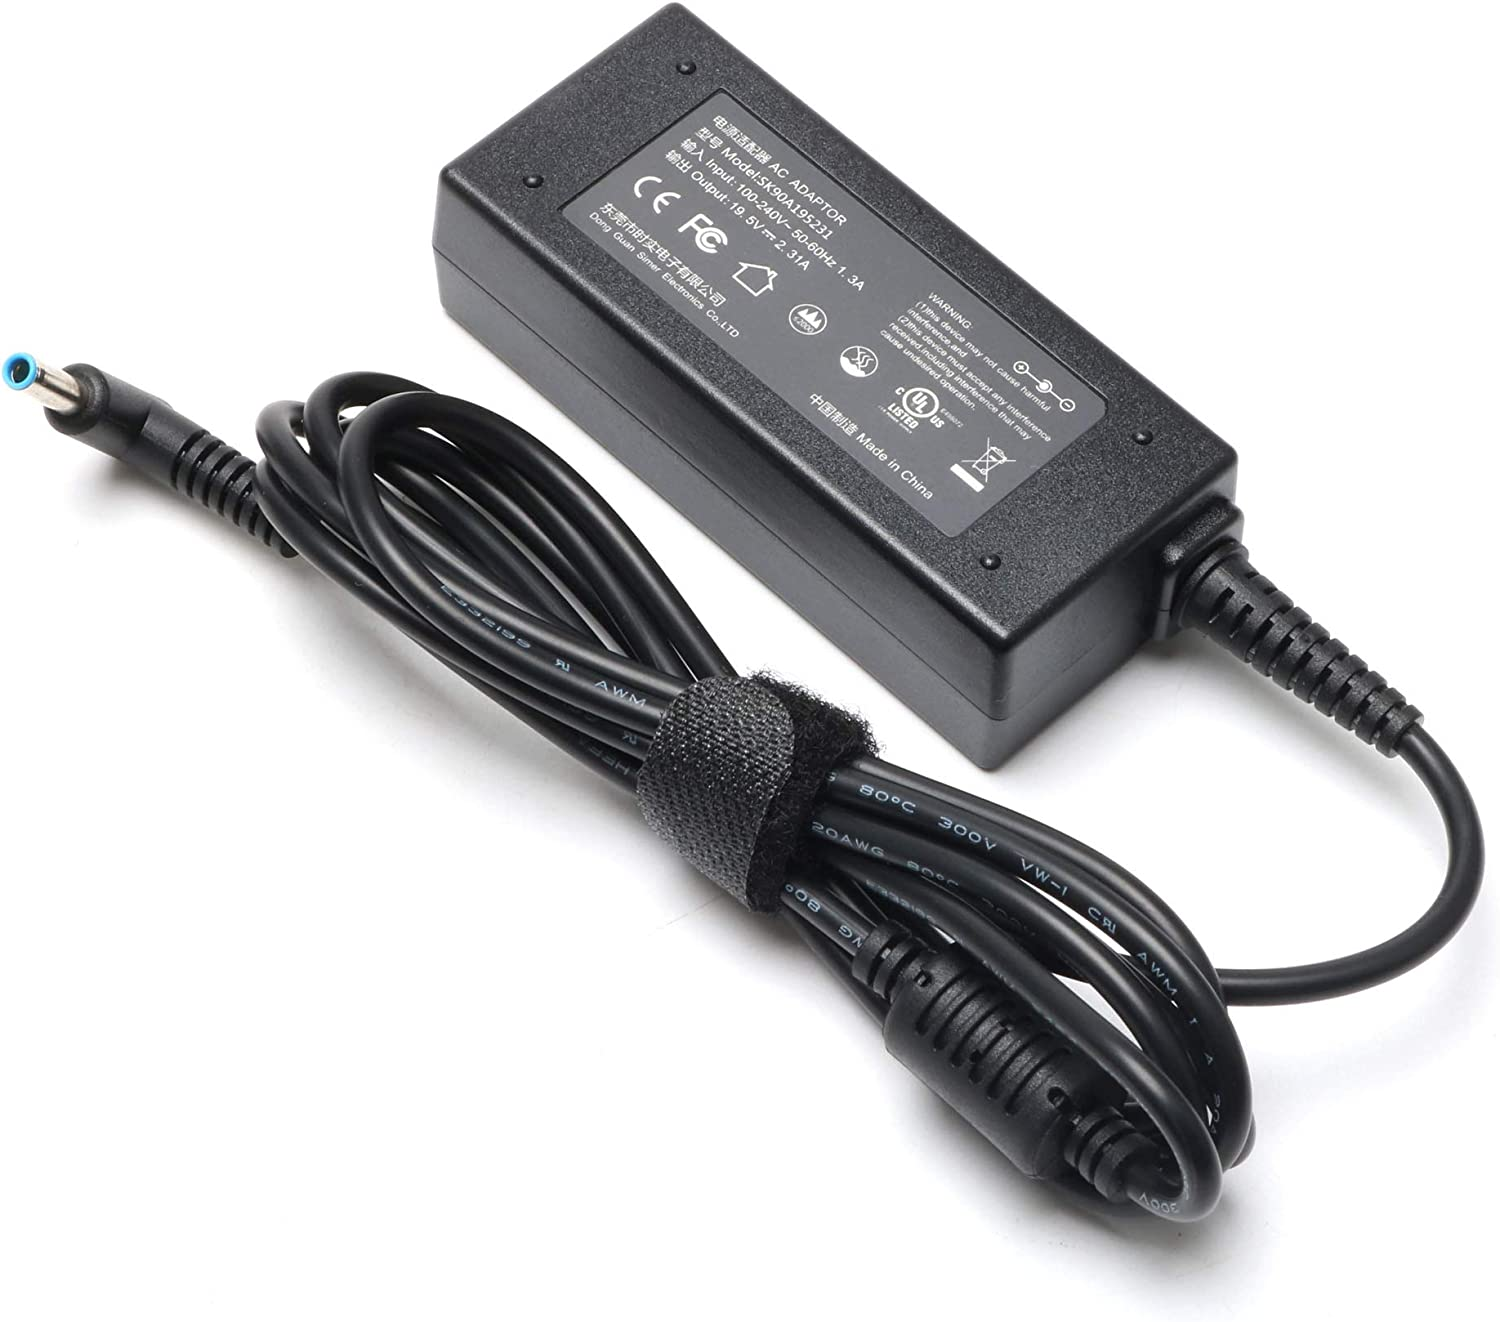 45W Laptop AC Adapter for HP Stream X360 Charger 11-d010wm 11-d011wm 11-d020nr 11-r010nr 11-r014wm 11-r015wm 11-r020nr 13-c002dx 13-c010nr 13-c110nr 14-ax020wm 14-ax030wm Notebook Convertible PC